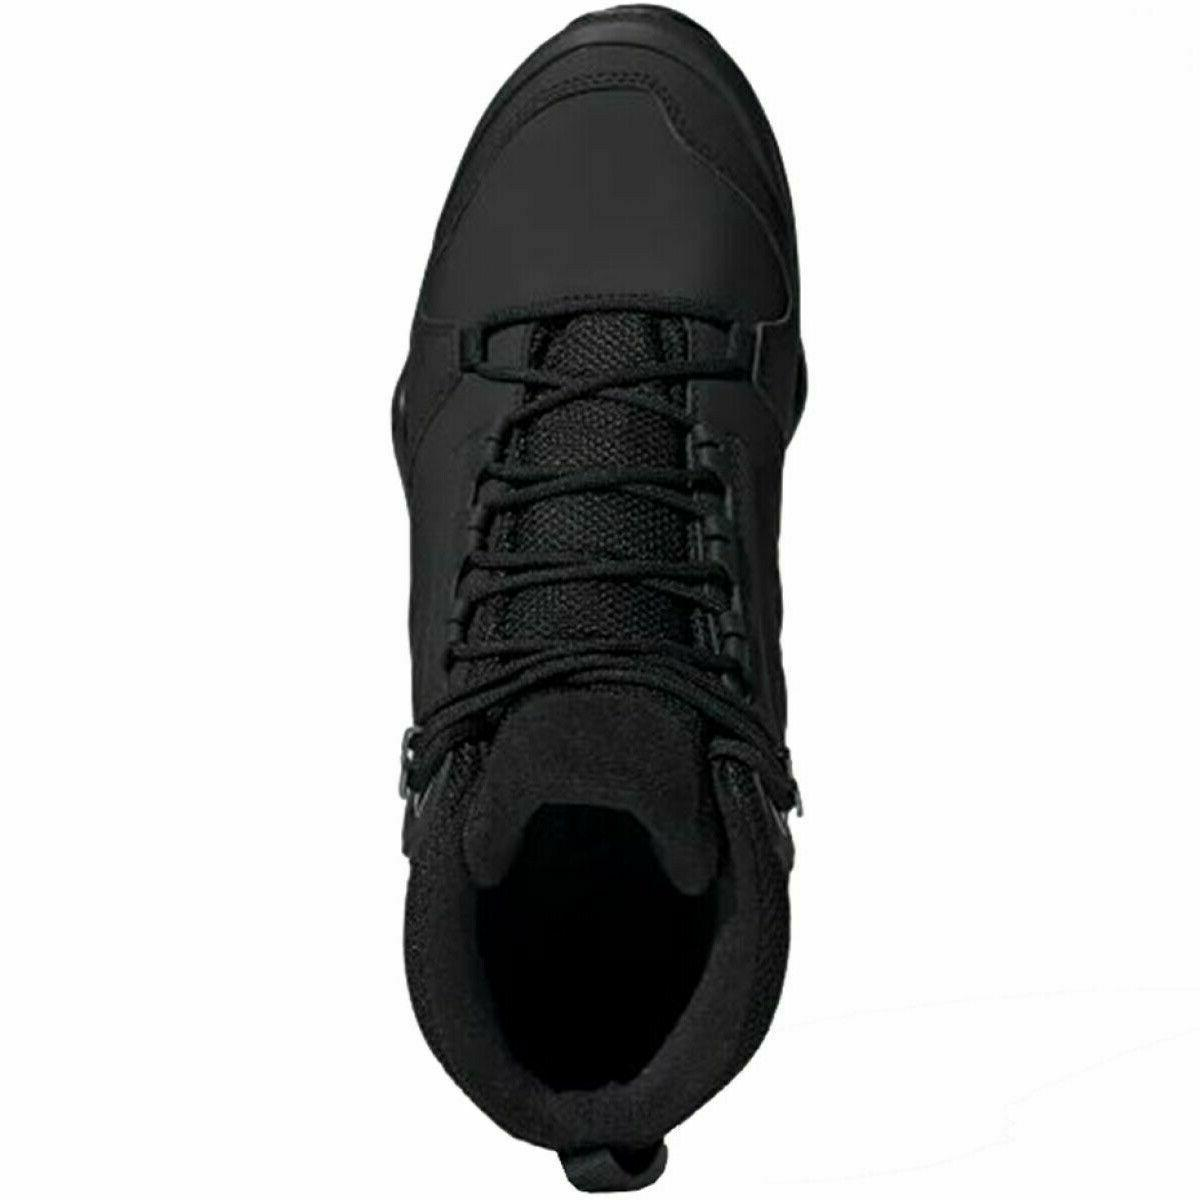 Beta Climawarm Boots